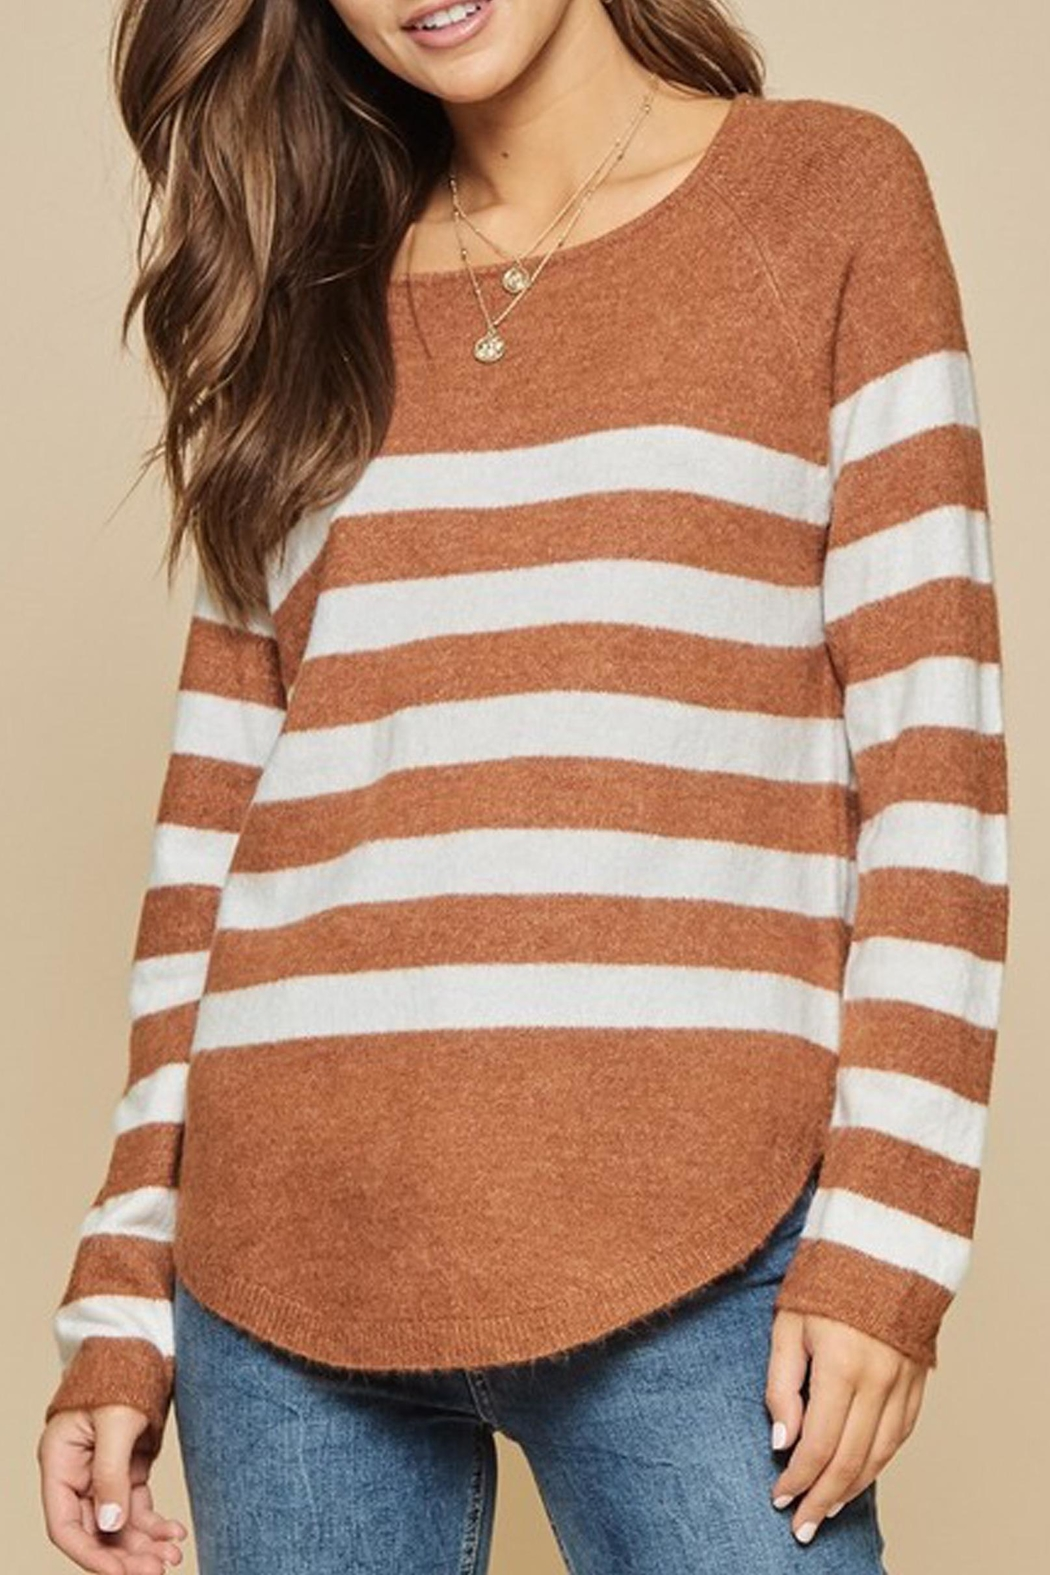 Andree The Breck Striped-Sweater - Main Image